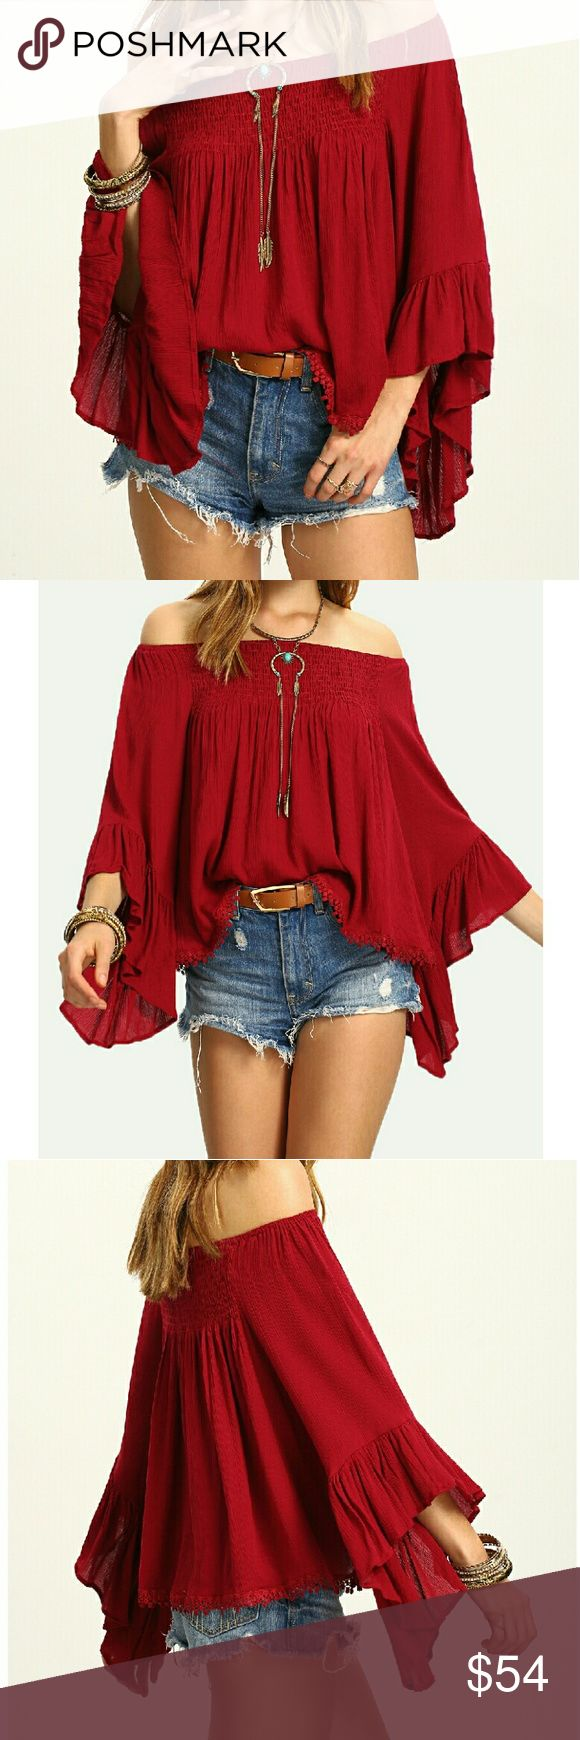 "Comfy Off The Shoulders Boho TOP   Fits Sizes 2-10 Beautiful burgundy?off the shoulder top. Comfy oversized design with an elastic band at the bust for an easy, effortless fit. Big, beautiful bell sleeves. Lightweight, made of a comfortable cotton blend.  One Size Fits Most  18.5"" Long with 15.7"" sleeves Small, medium and large all have same measurements. Perfect fit for sizes 2-10  FREE GIFT WITH PURCHASE. Please allow 7 days for processing. Boutique Tops Blouses"